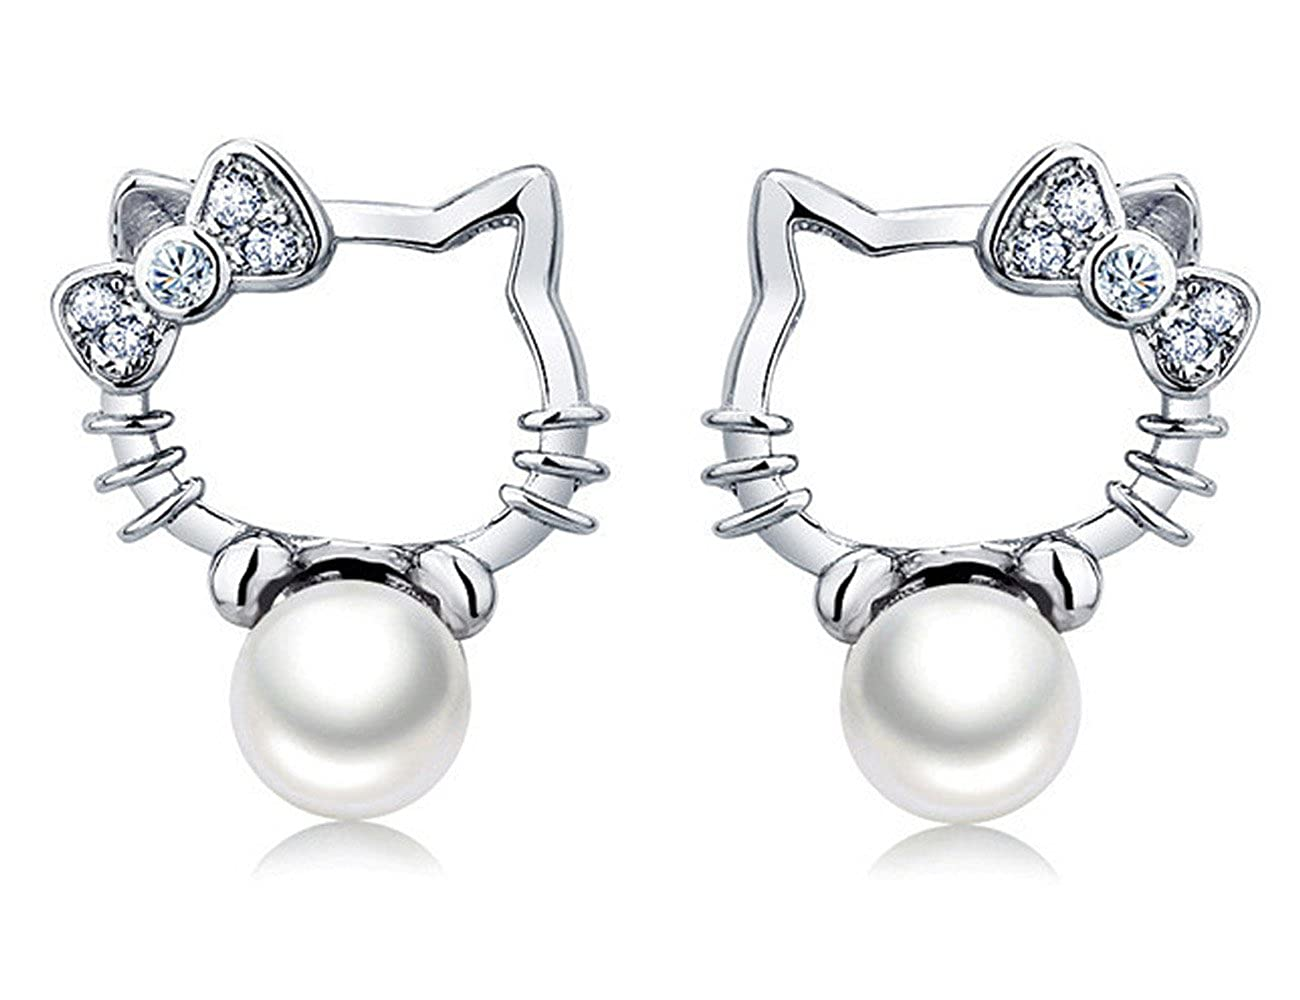 a233654d8 Amazon.com: S925 Sterling Silver Platinum-Plated Pearl Lovely Hello Kitty  Stud Earrings: Jewelry